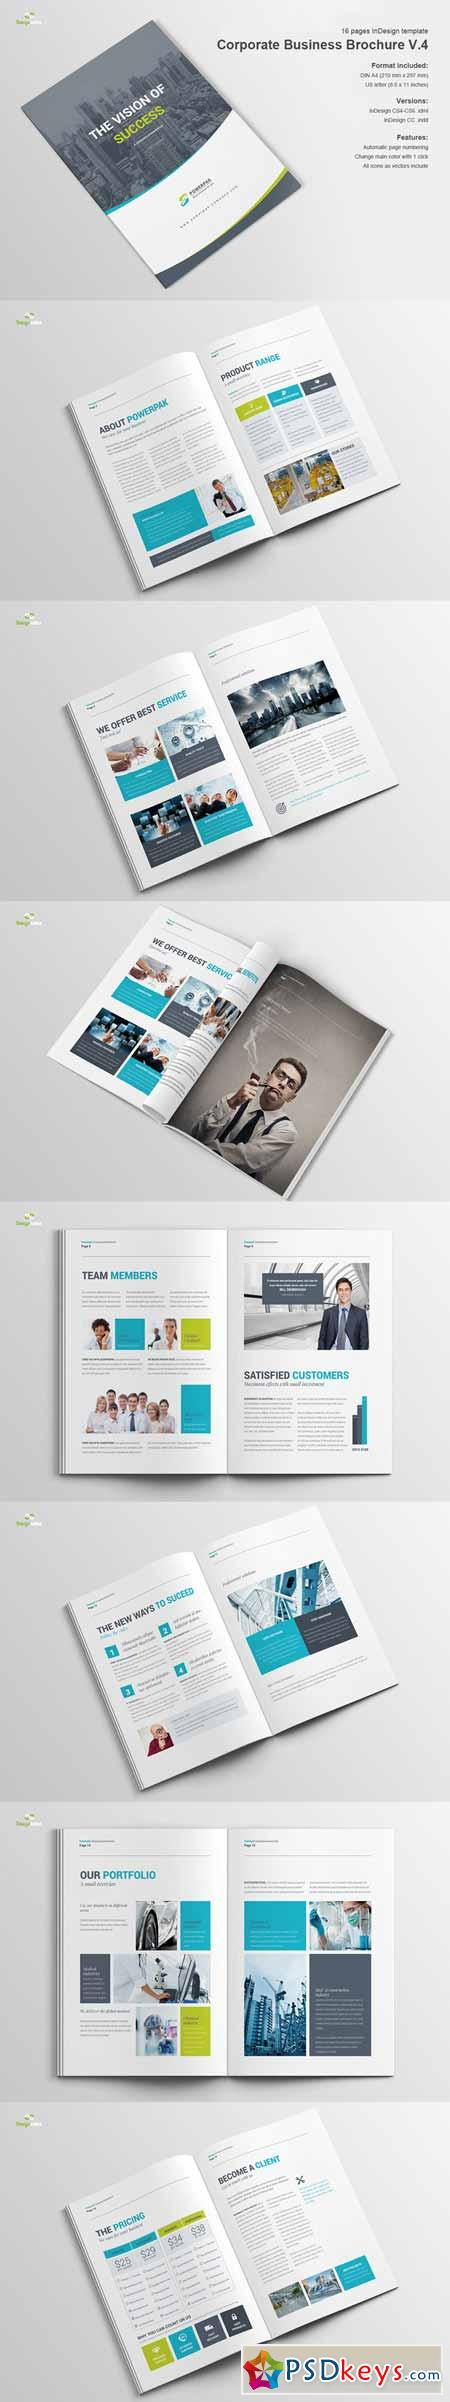 Corporate Business Brochure V.4 456344